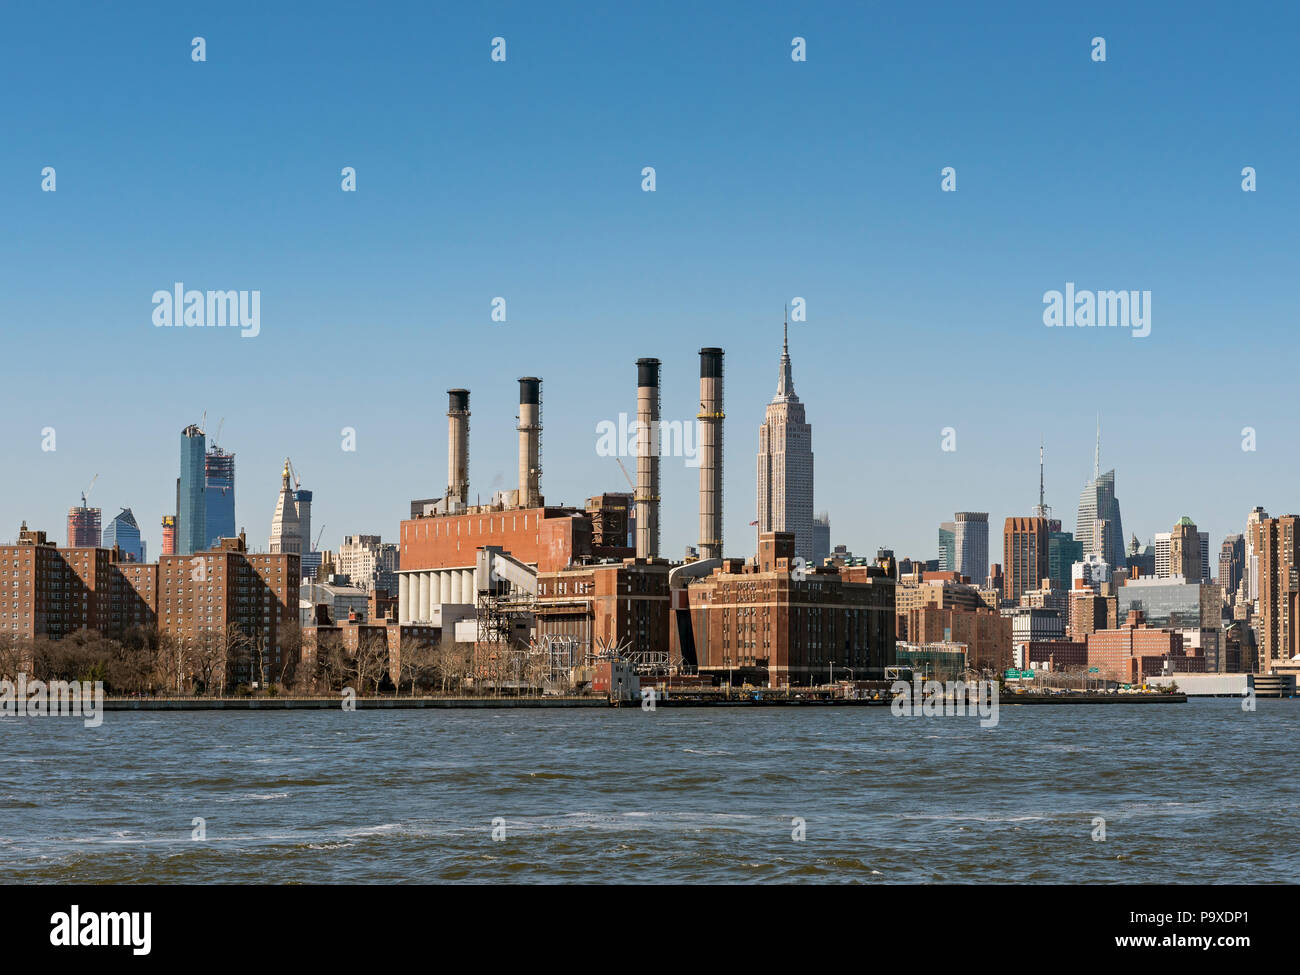 Consolidated Edison Power Plant in Manhattan seen from East River, New York City, USA - Stock Image